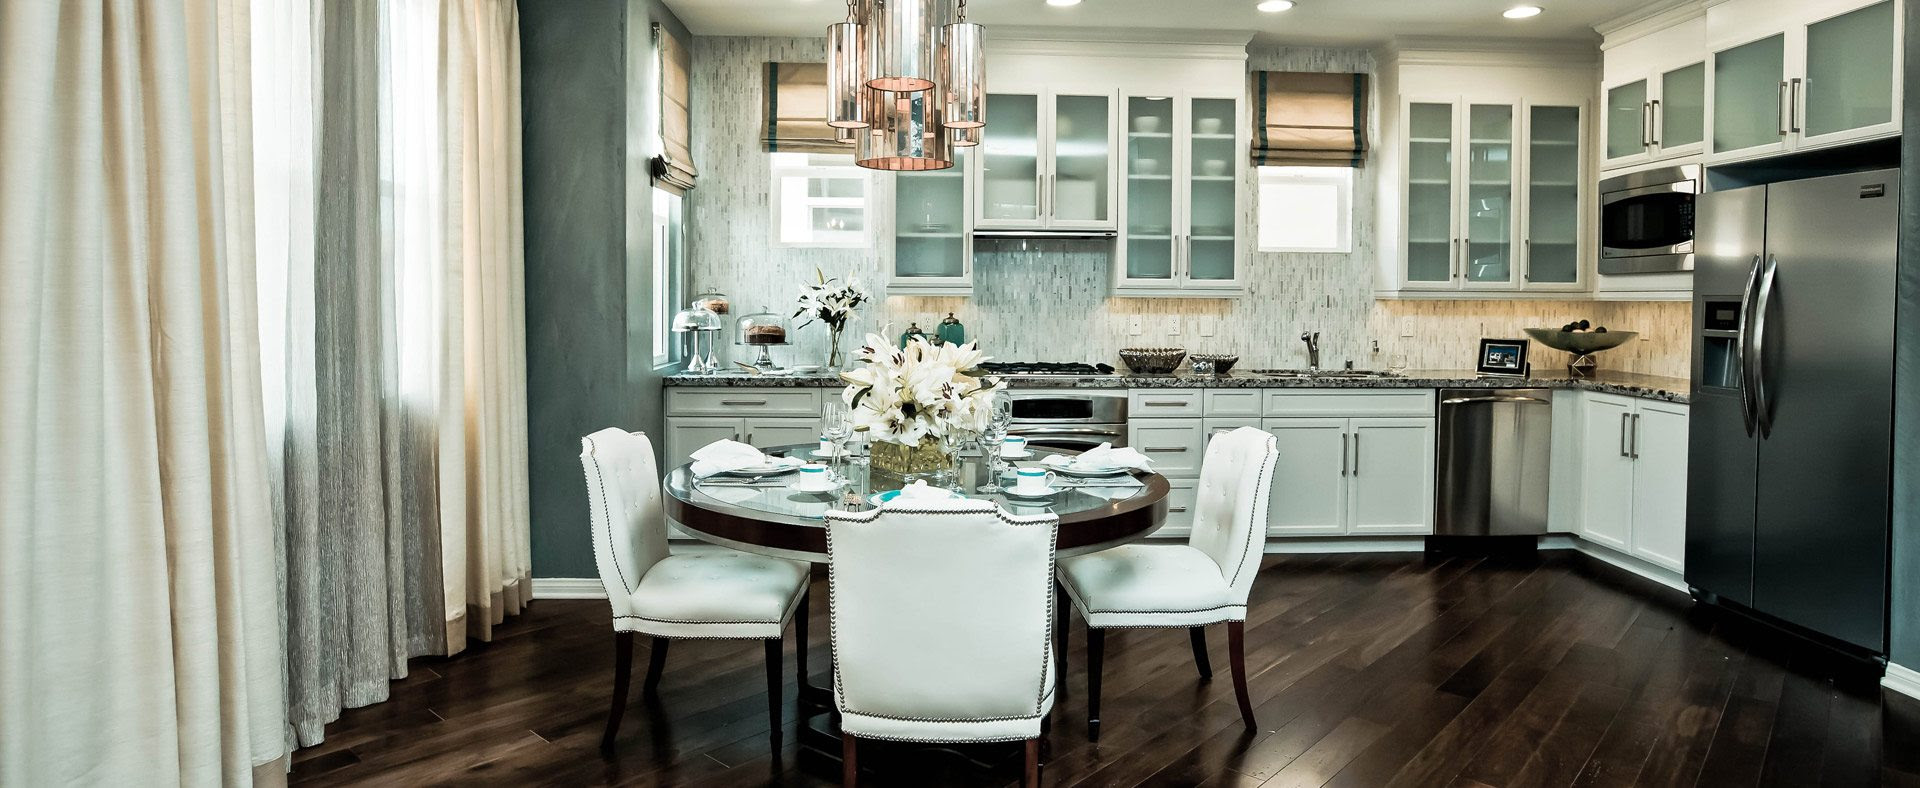 Top Los Angeles Interior Designers Hgtv Star Charles Neal